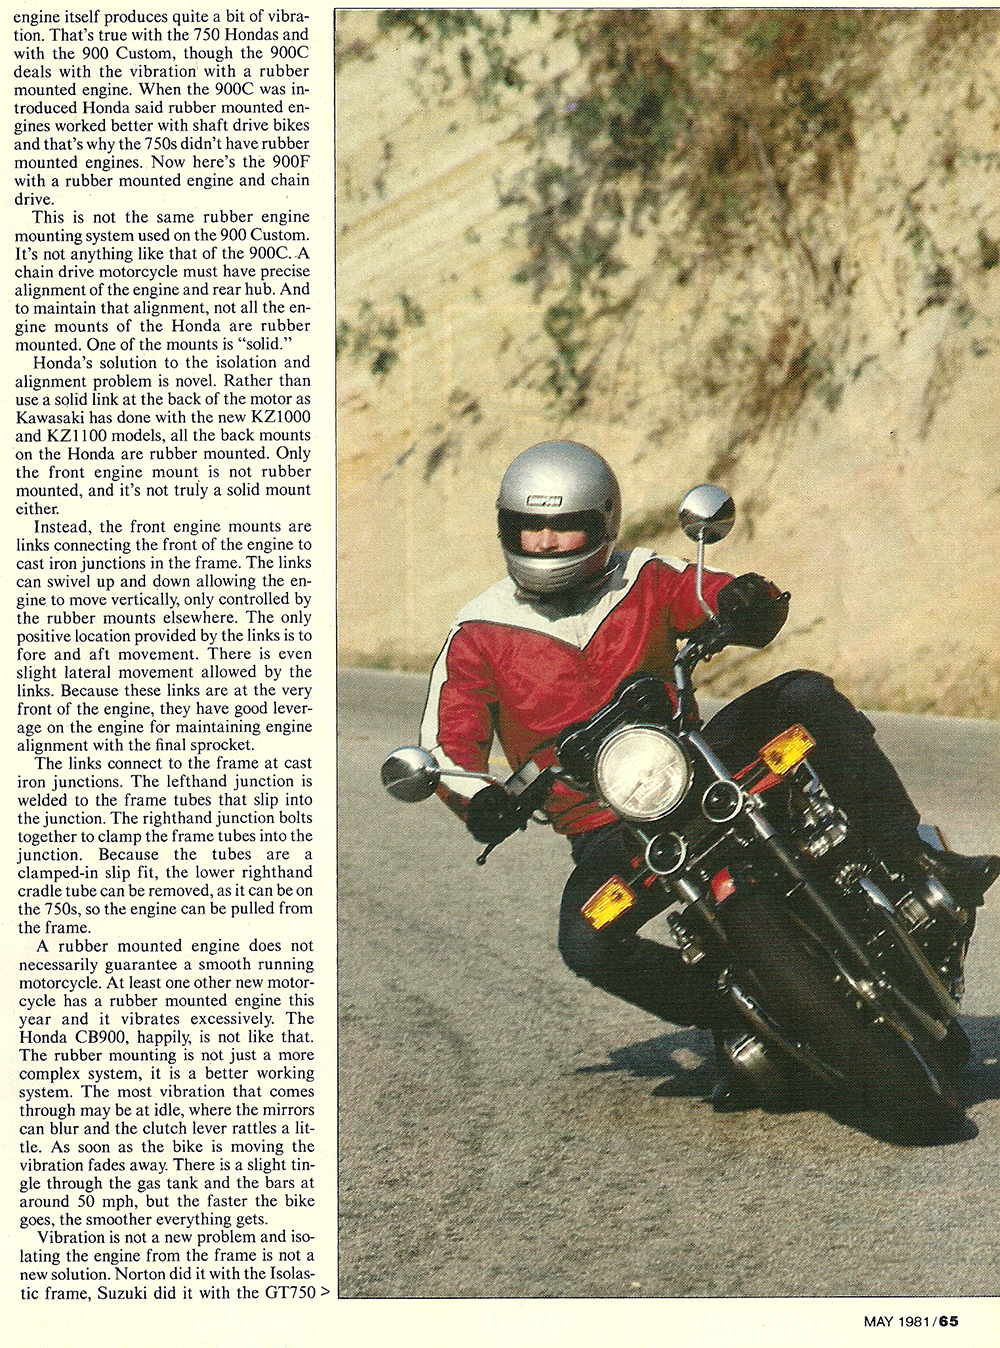 1981 CB900F Super Sport road test 3.jpg